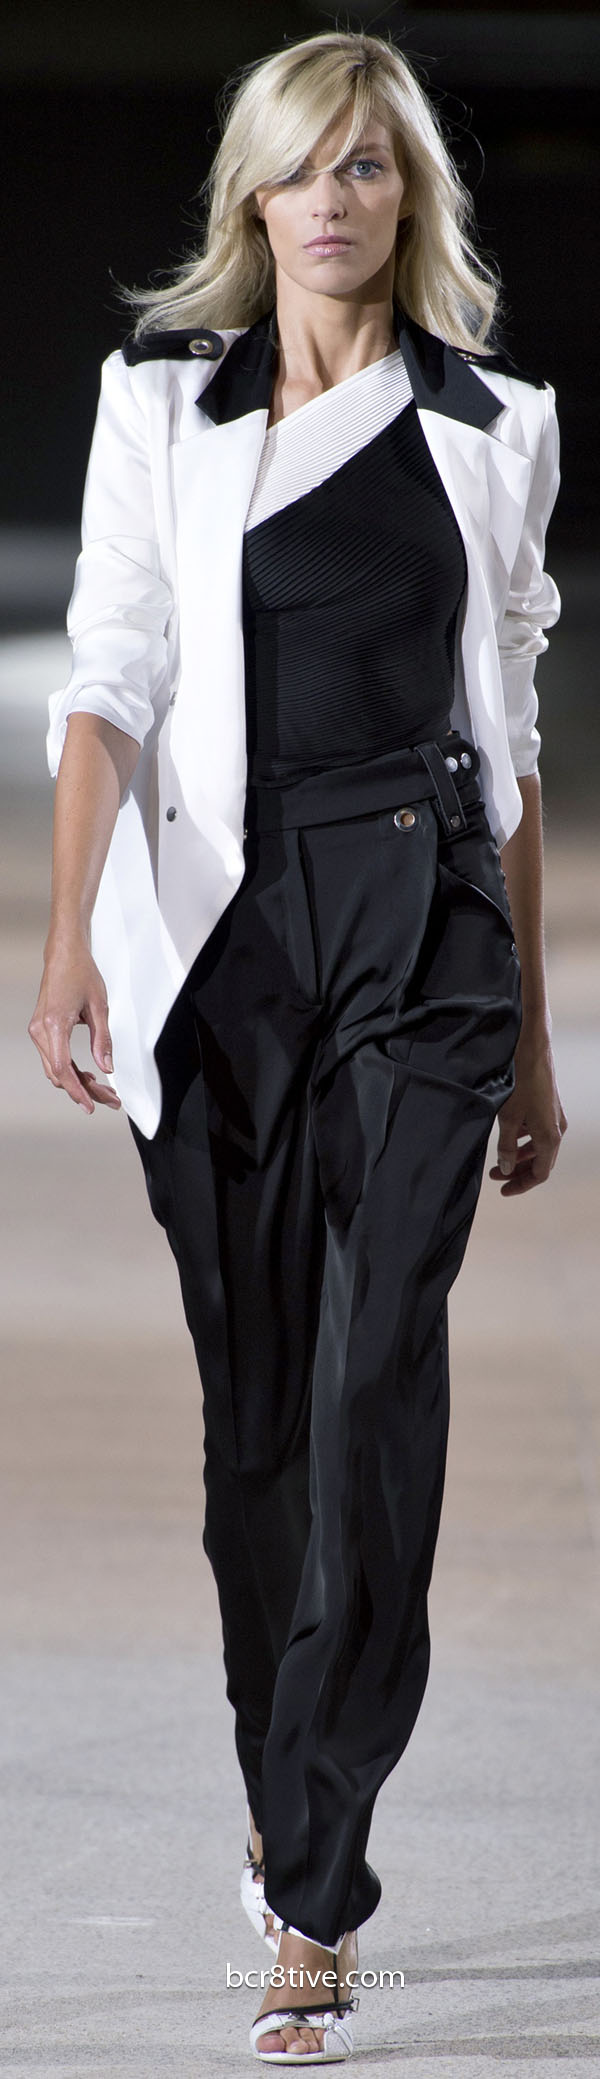 Anthony Vaccarello - Spring 2013 Ready To Wear